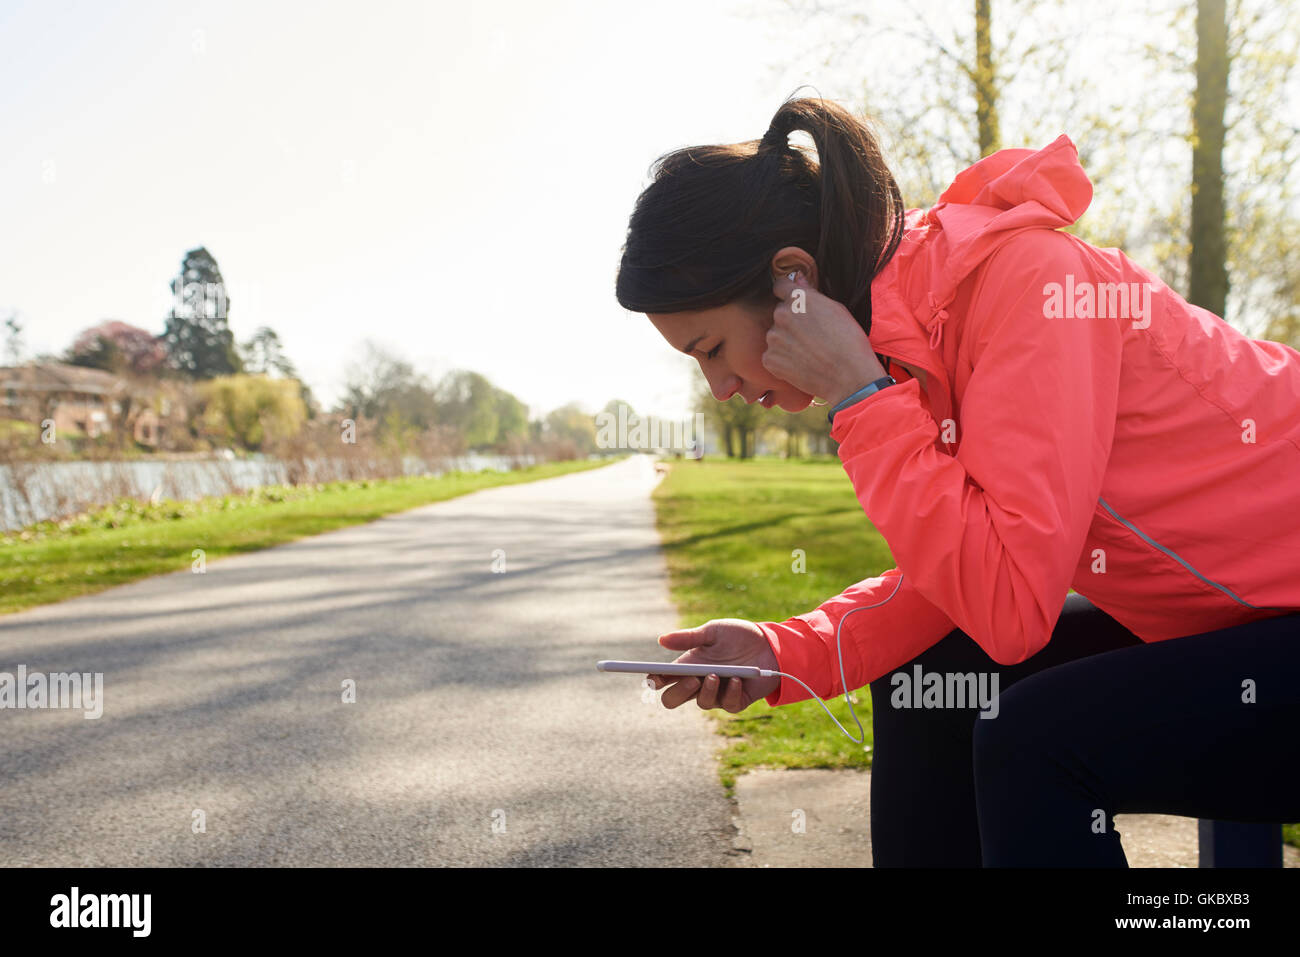 Woman Resting On Park Bench With Cellphone During Exercise - Stock Image